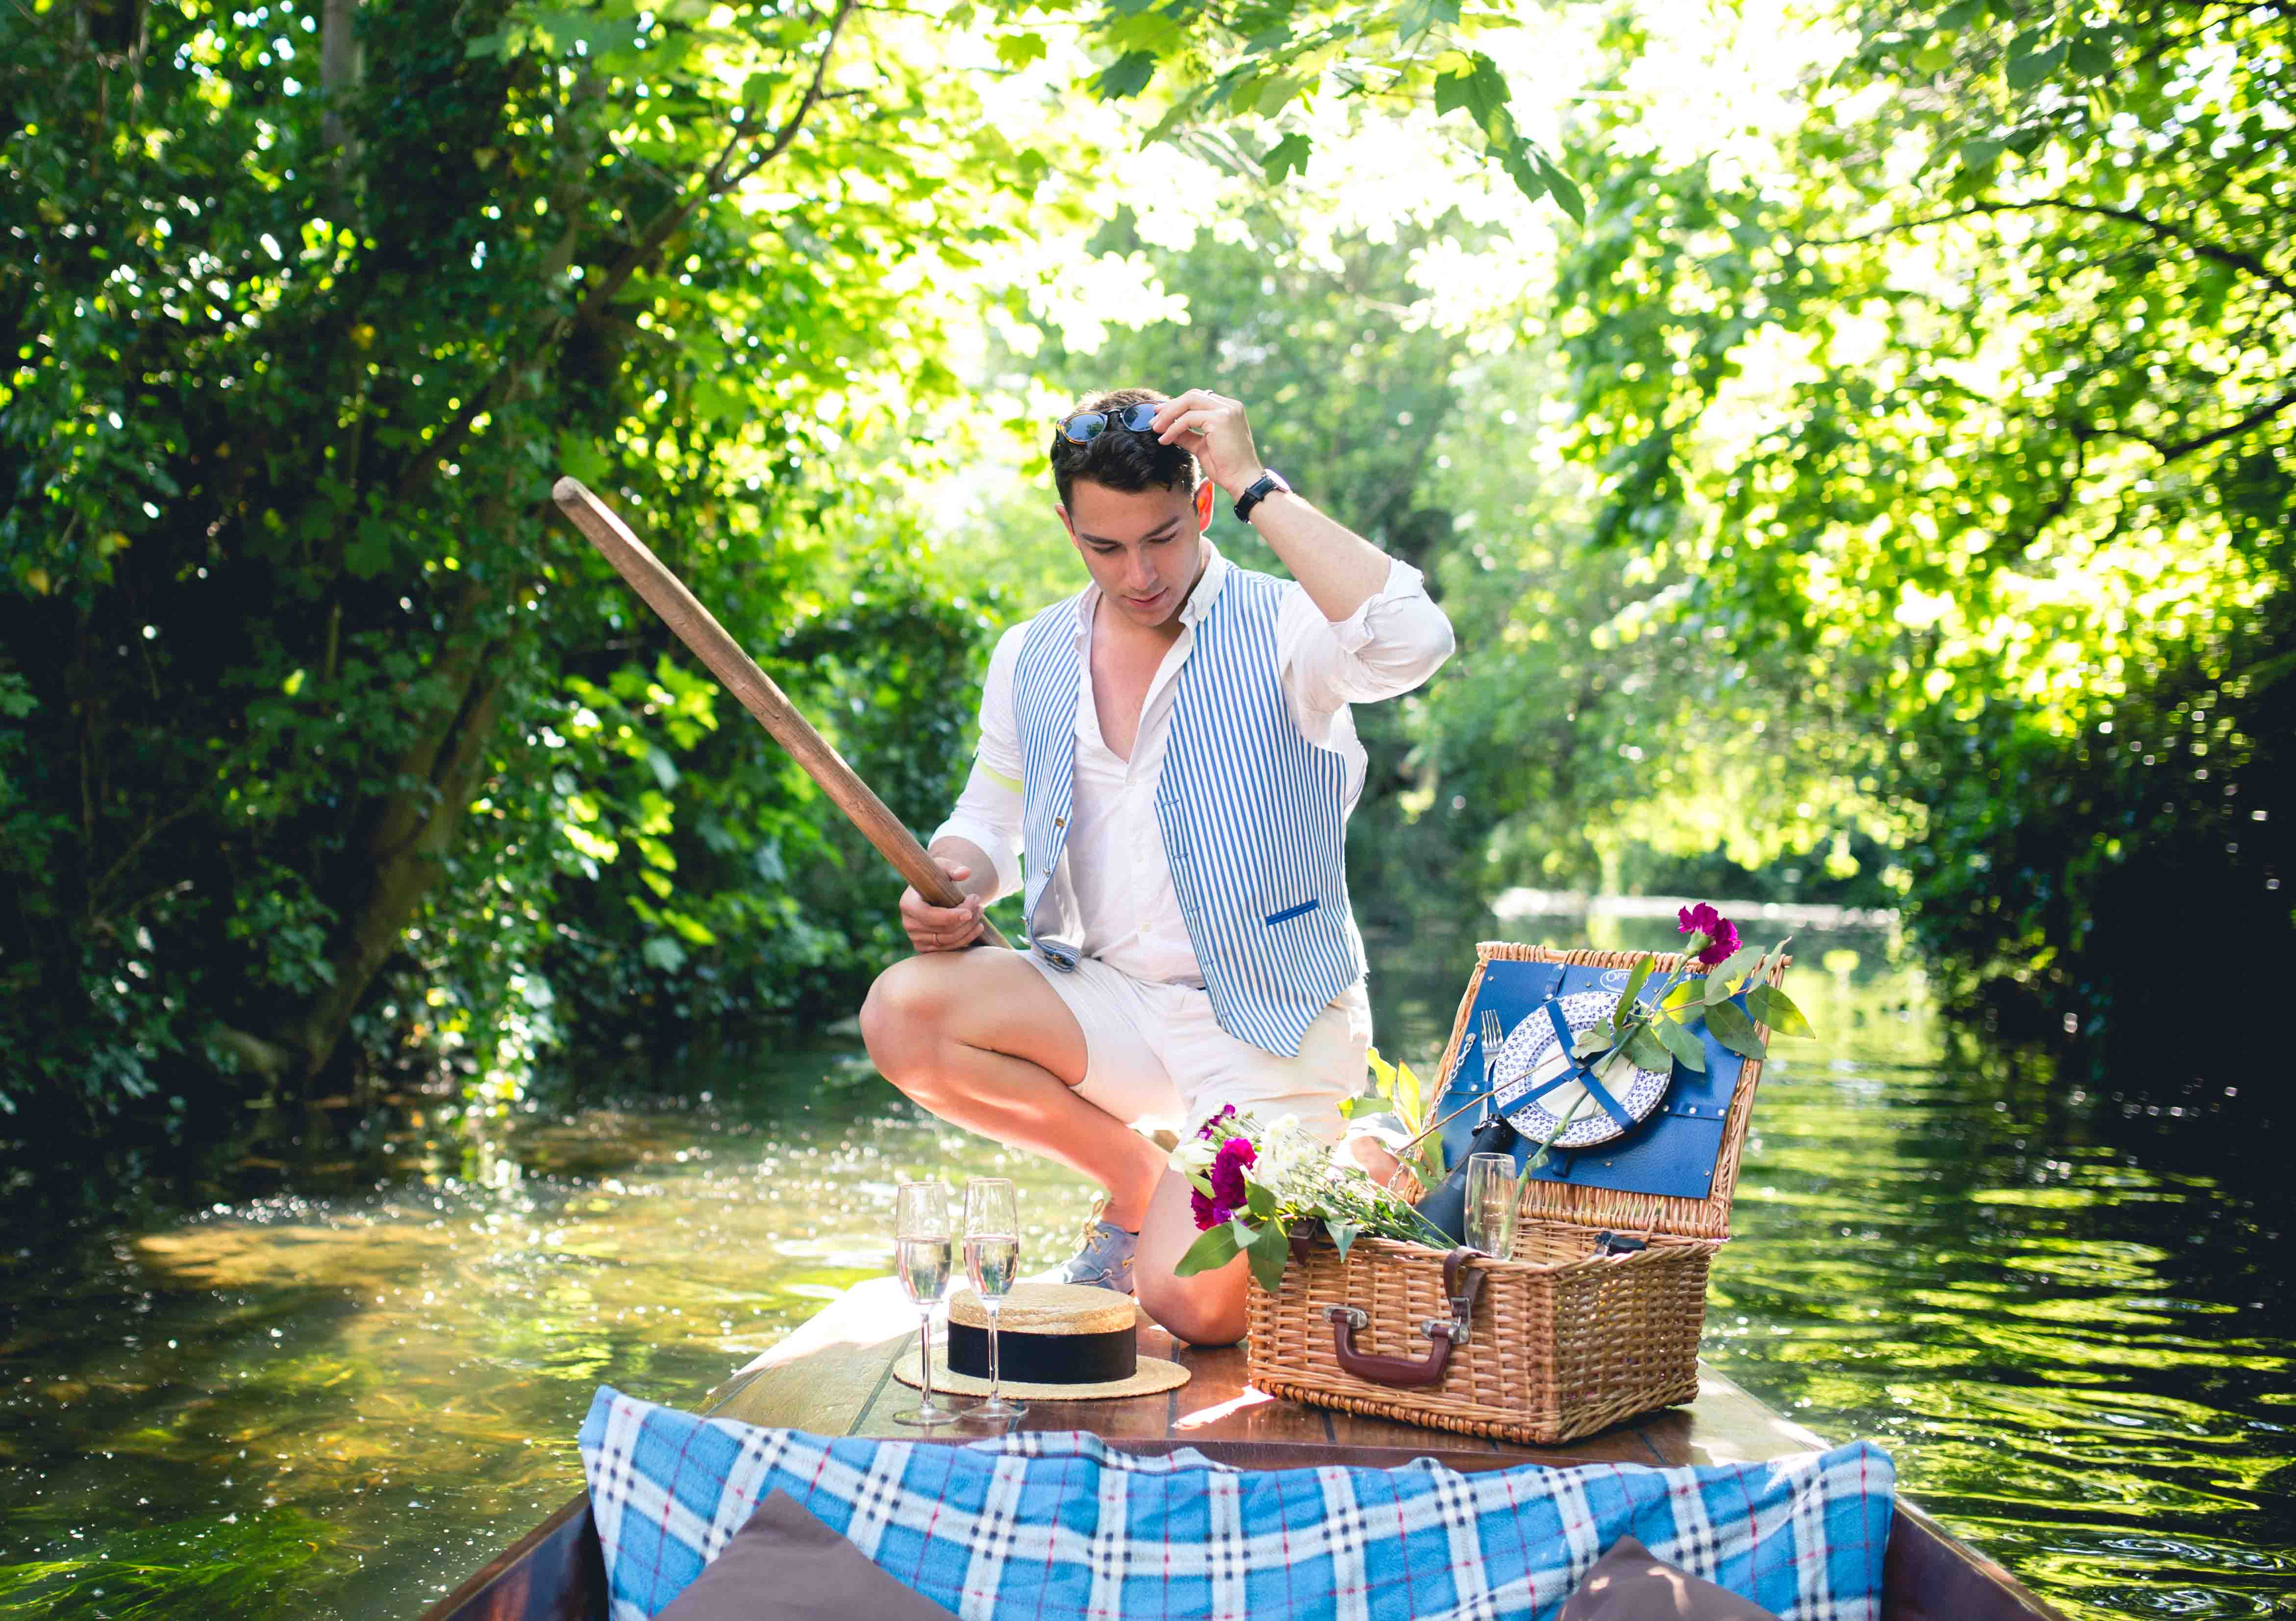 Punting with a picnic